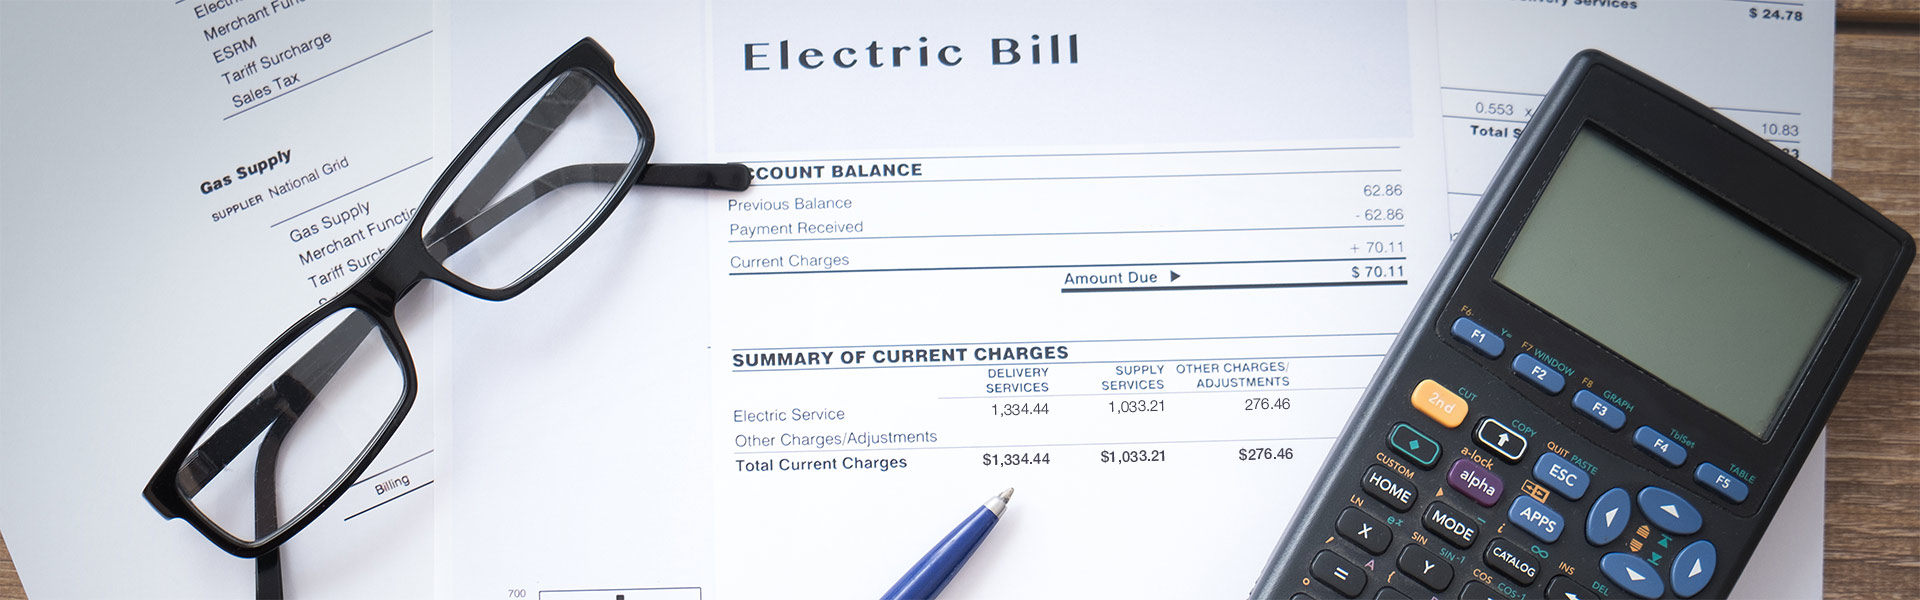 Utility Bill Review